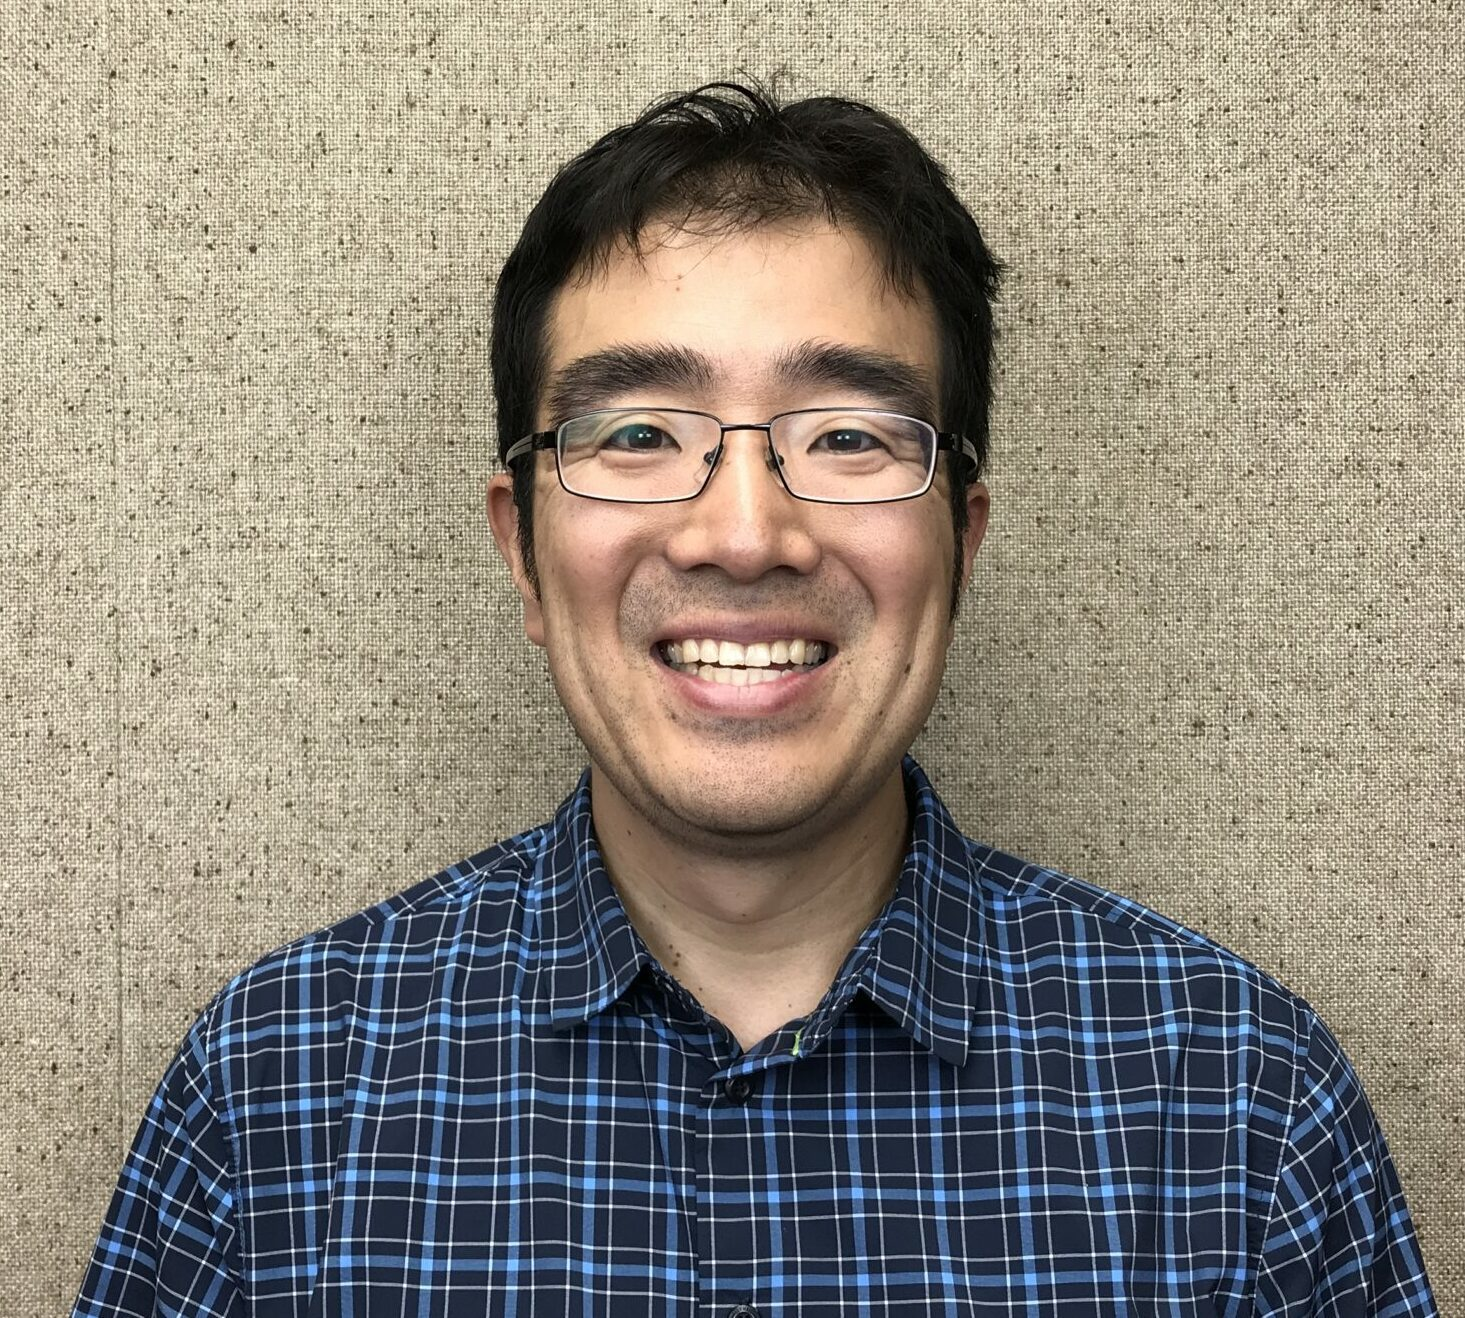 , Game-Changing the Roofing Industry with Sustainable, Eco-Friendly Green Roof Coatings – with Tatsuya 'Tats' Nakagawa of Castagra, The Circular Economy